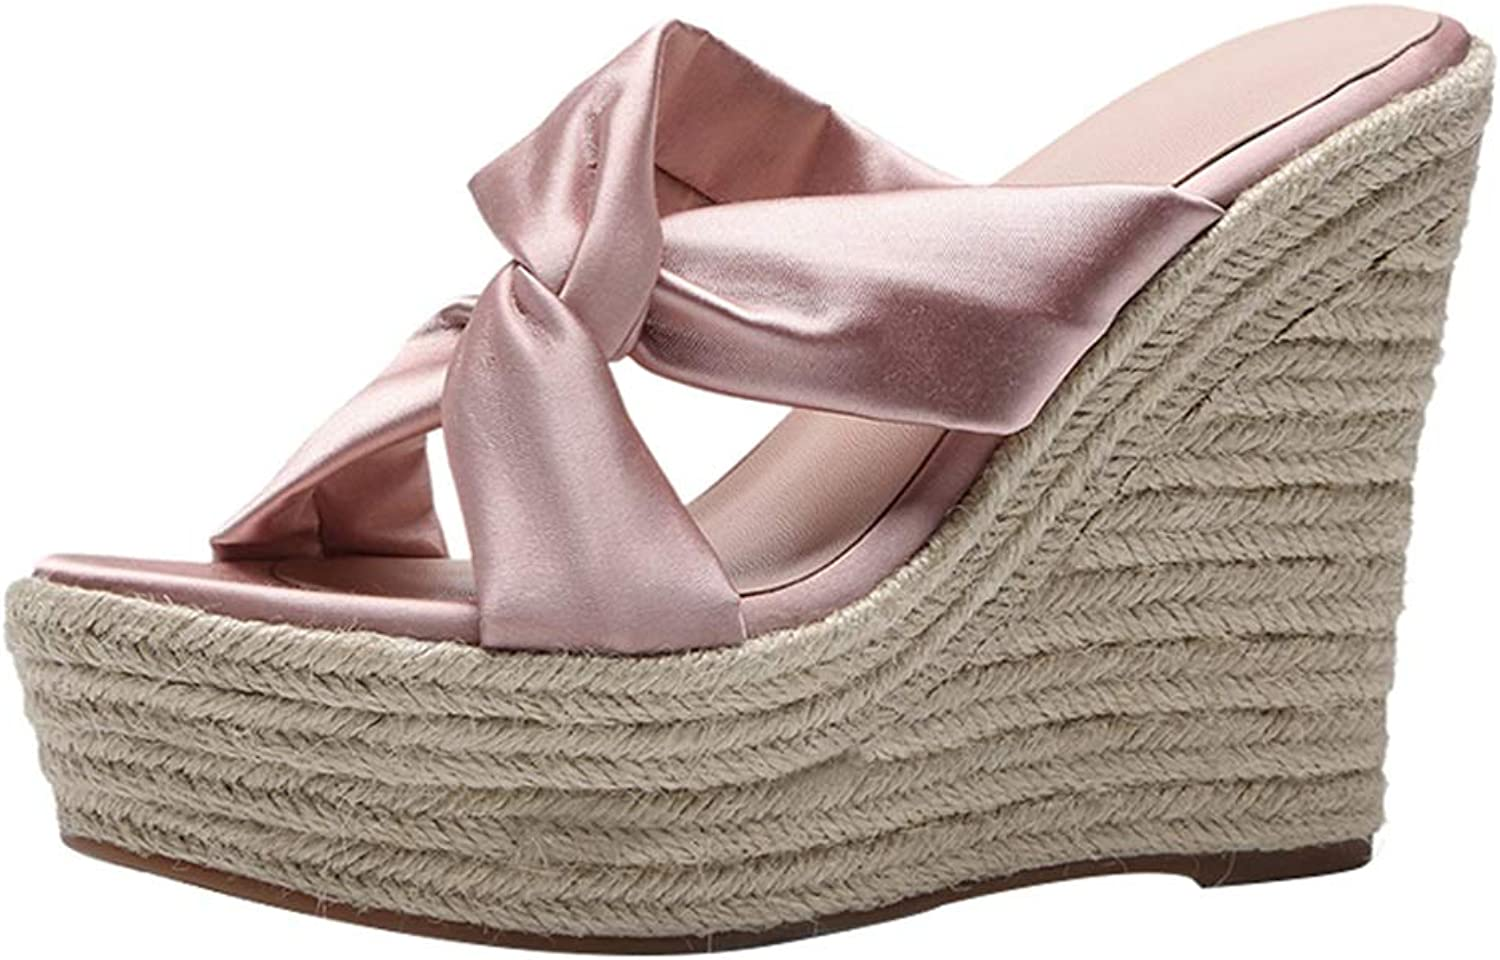 Wedge Sandals Ladies High-Heeled Slippers Satin Heels Ladies Platform shoes Fashion Sexy High Heels High 12cm (color   Pink, Size   36 US6)